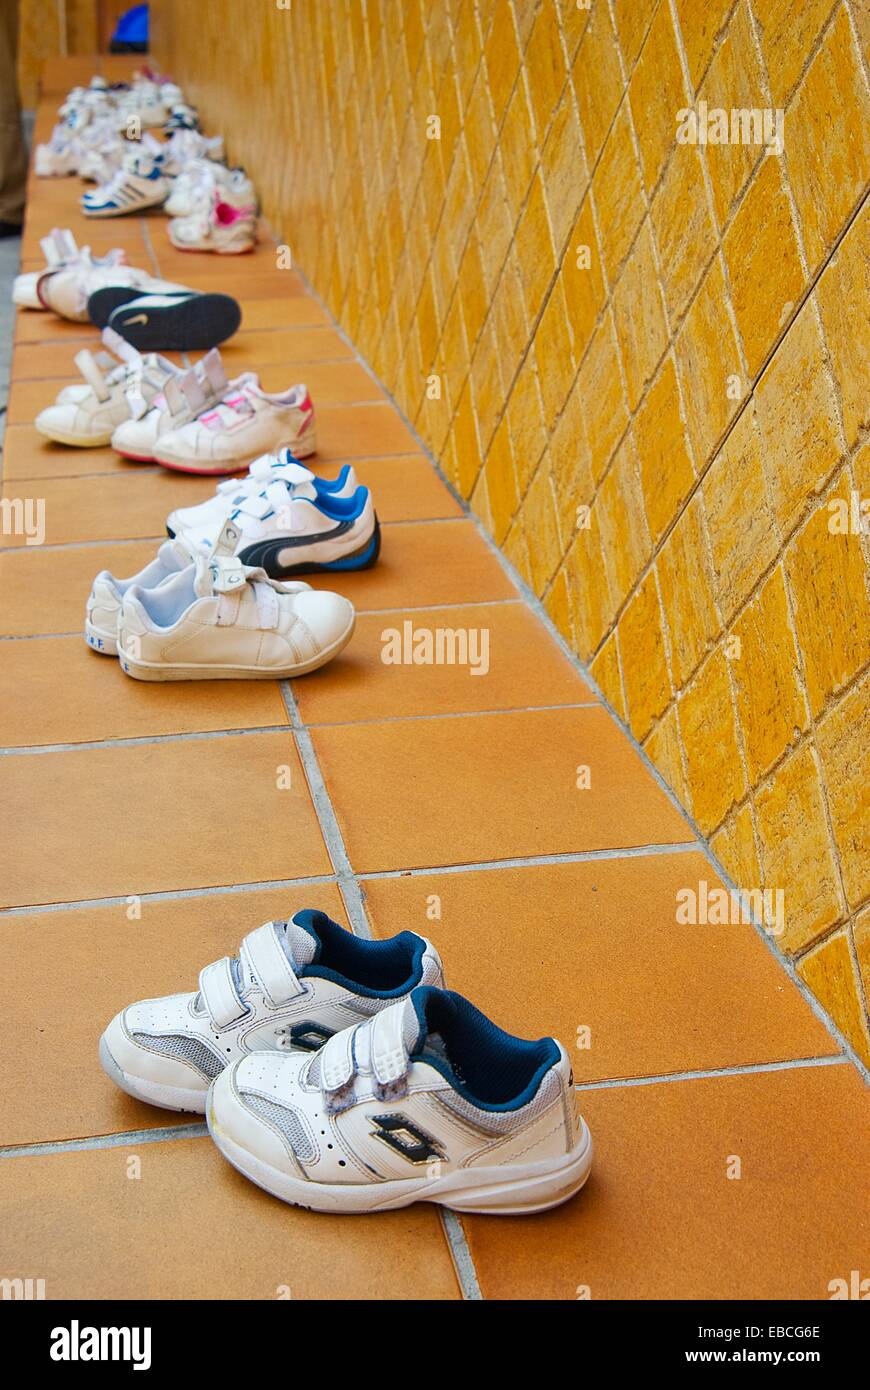 Children snickers shoes left on a bench - Stock Image